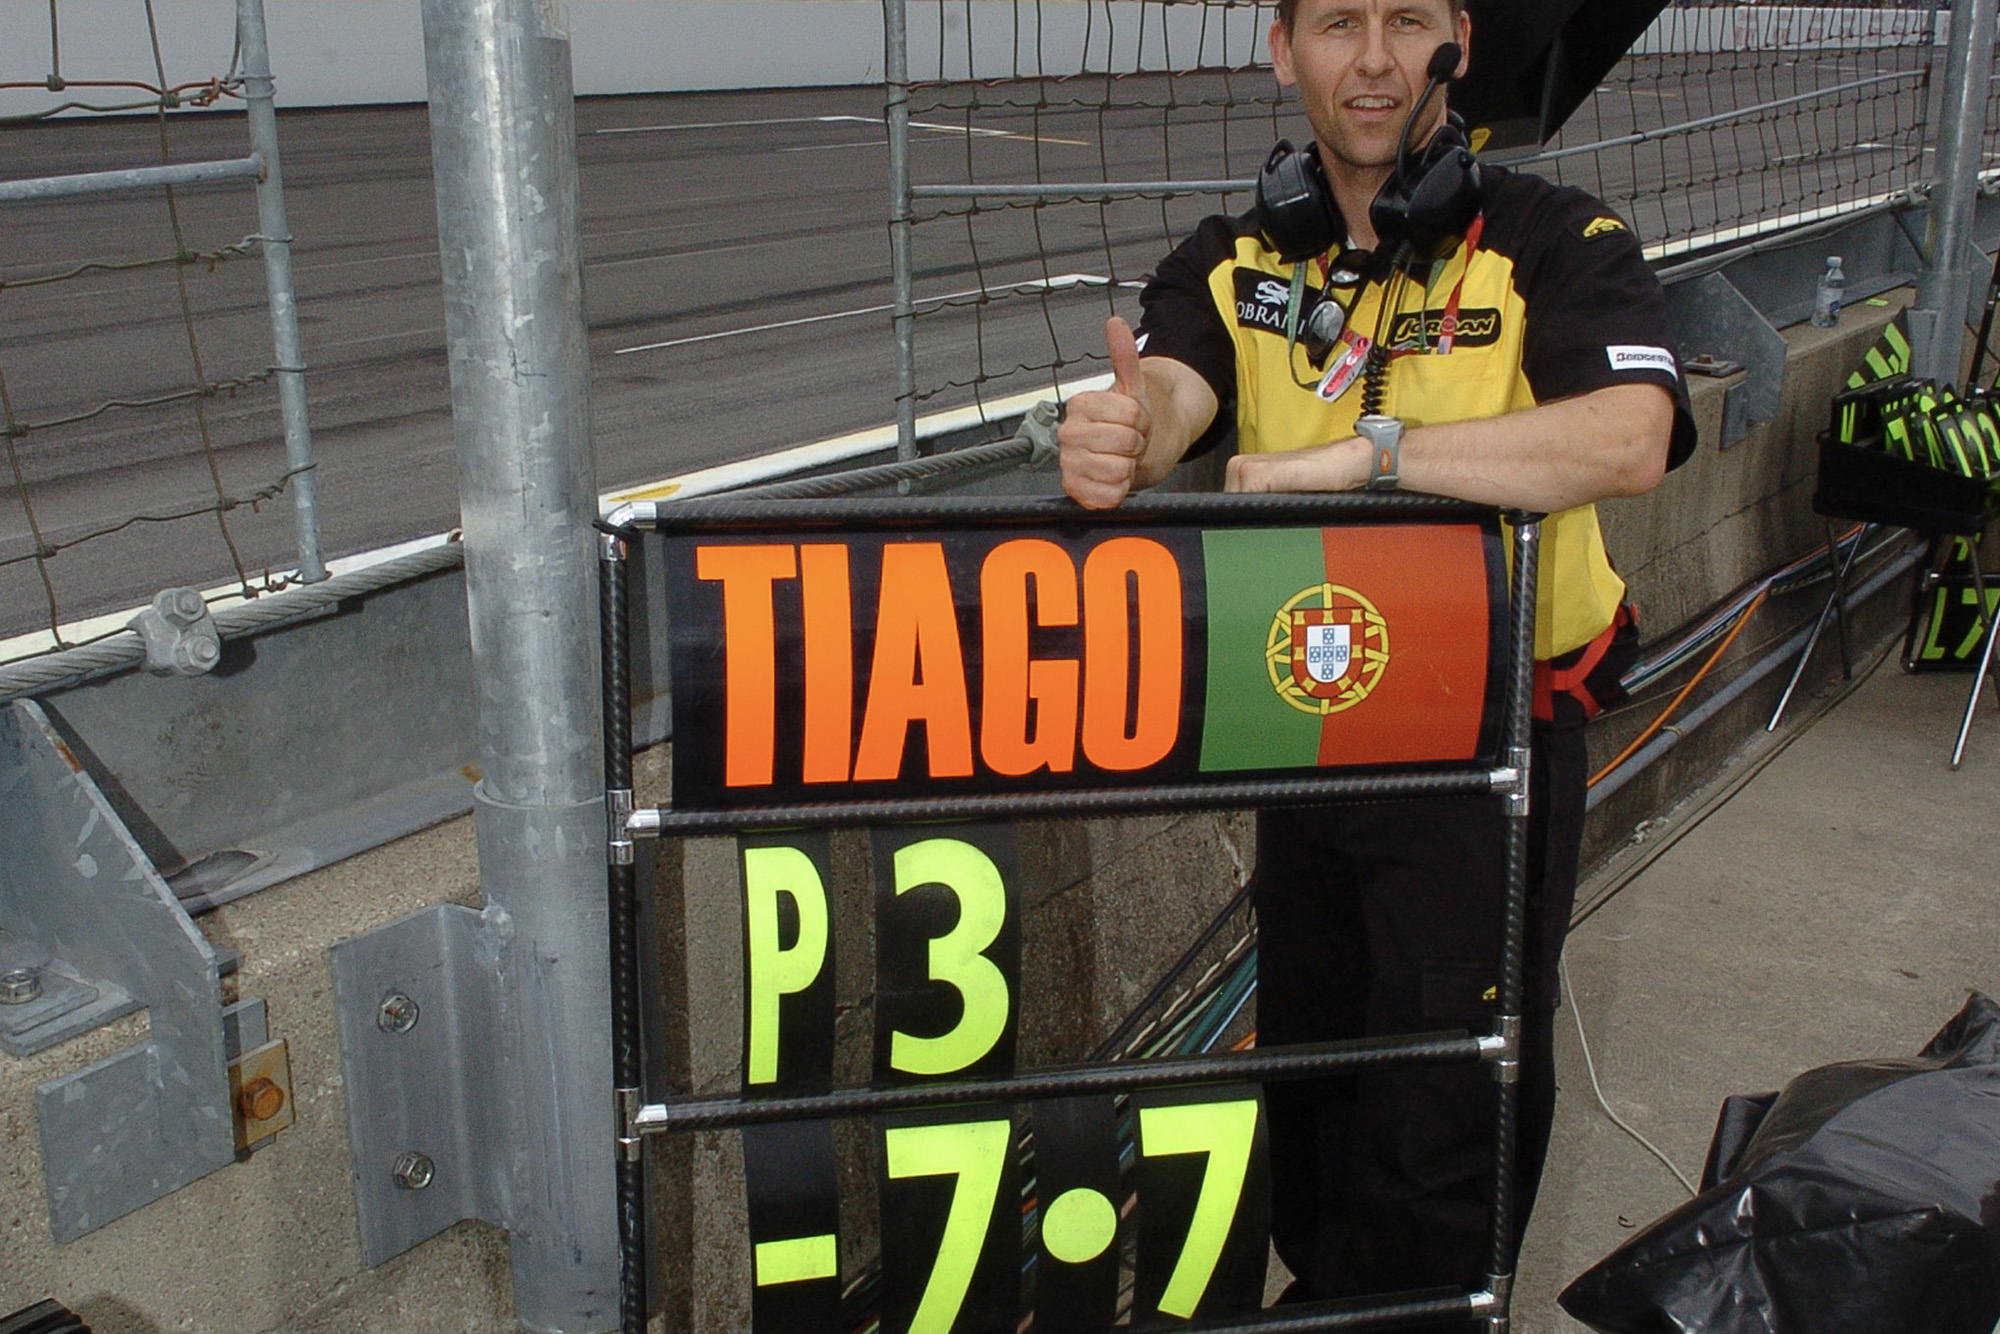 Tiago Monteiro pit board showing as P3 at the 2005 US Grand Prix